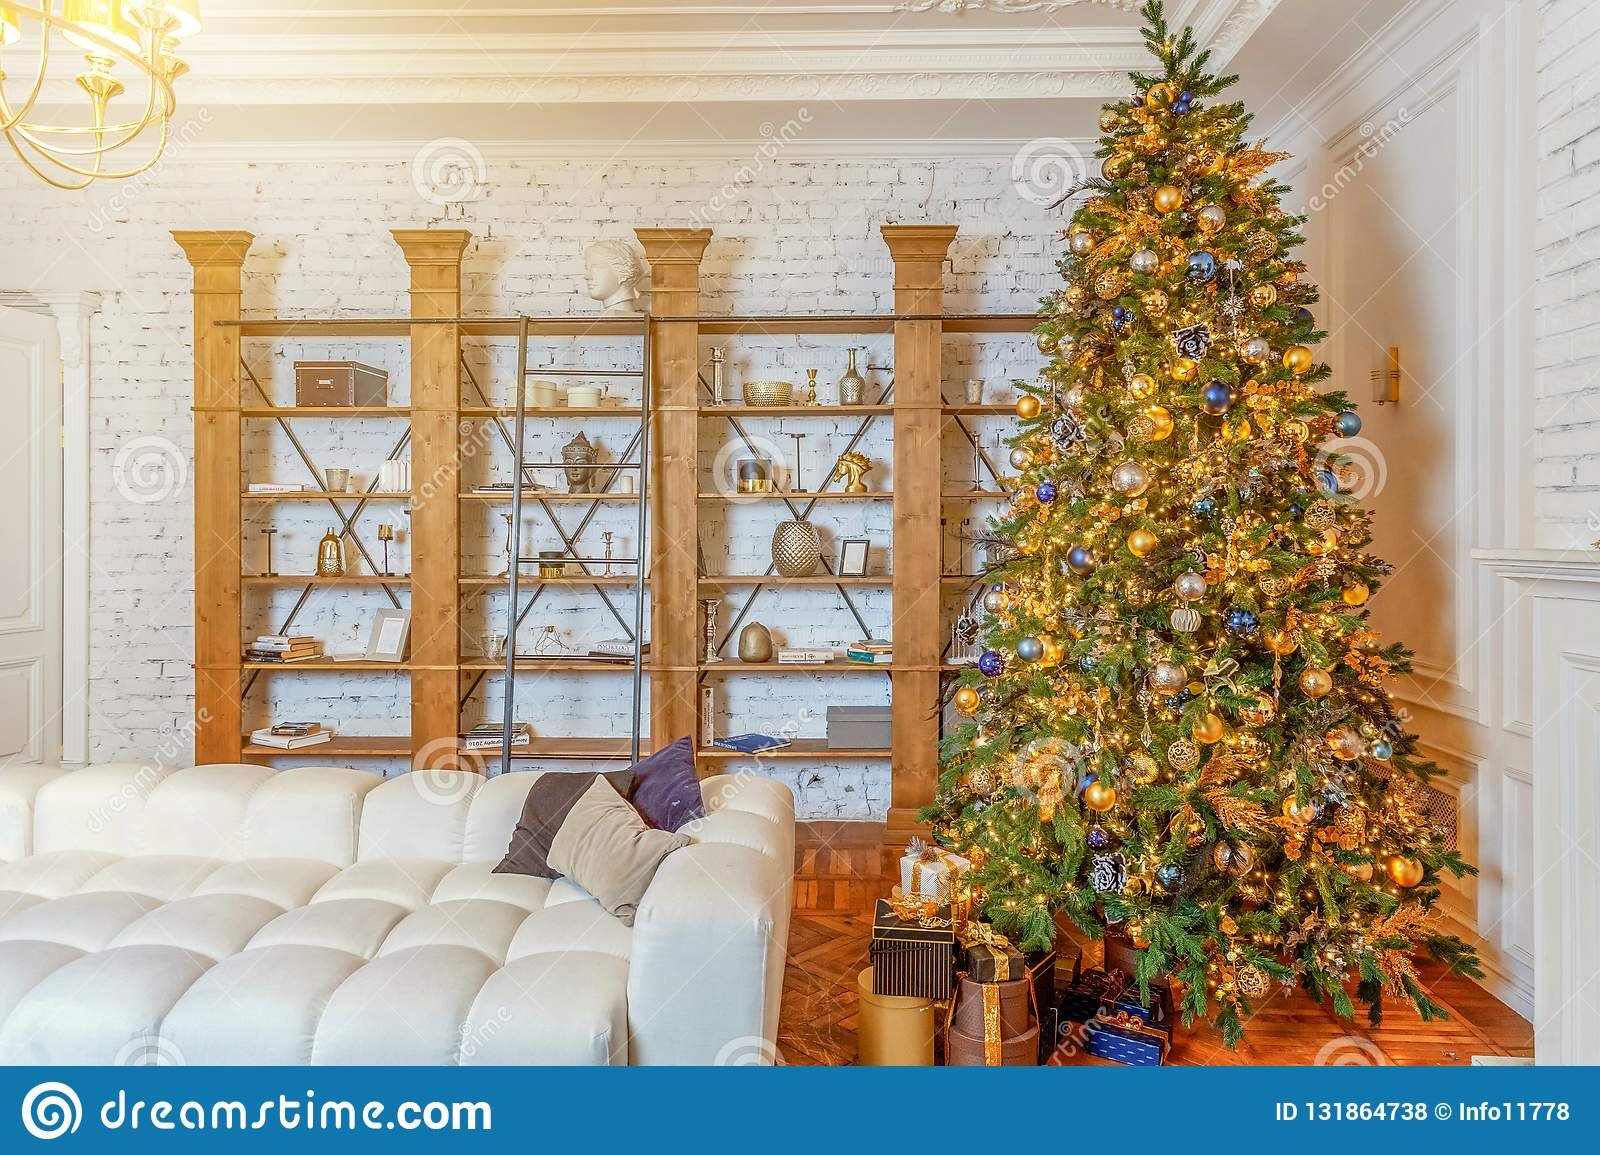 Apartment Christmas Decorations Indoor.Classic Christmas New Year Decorated Interior Room Editorial